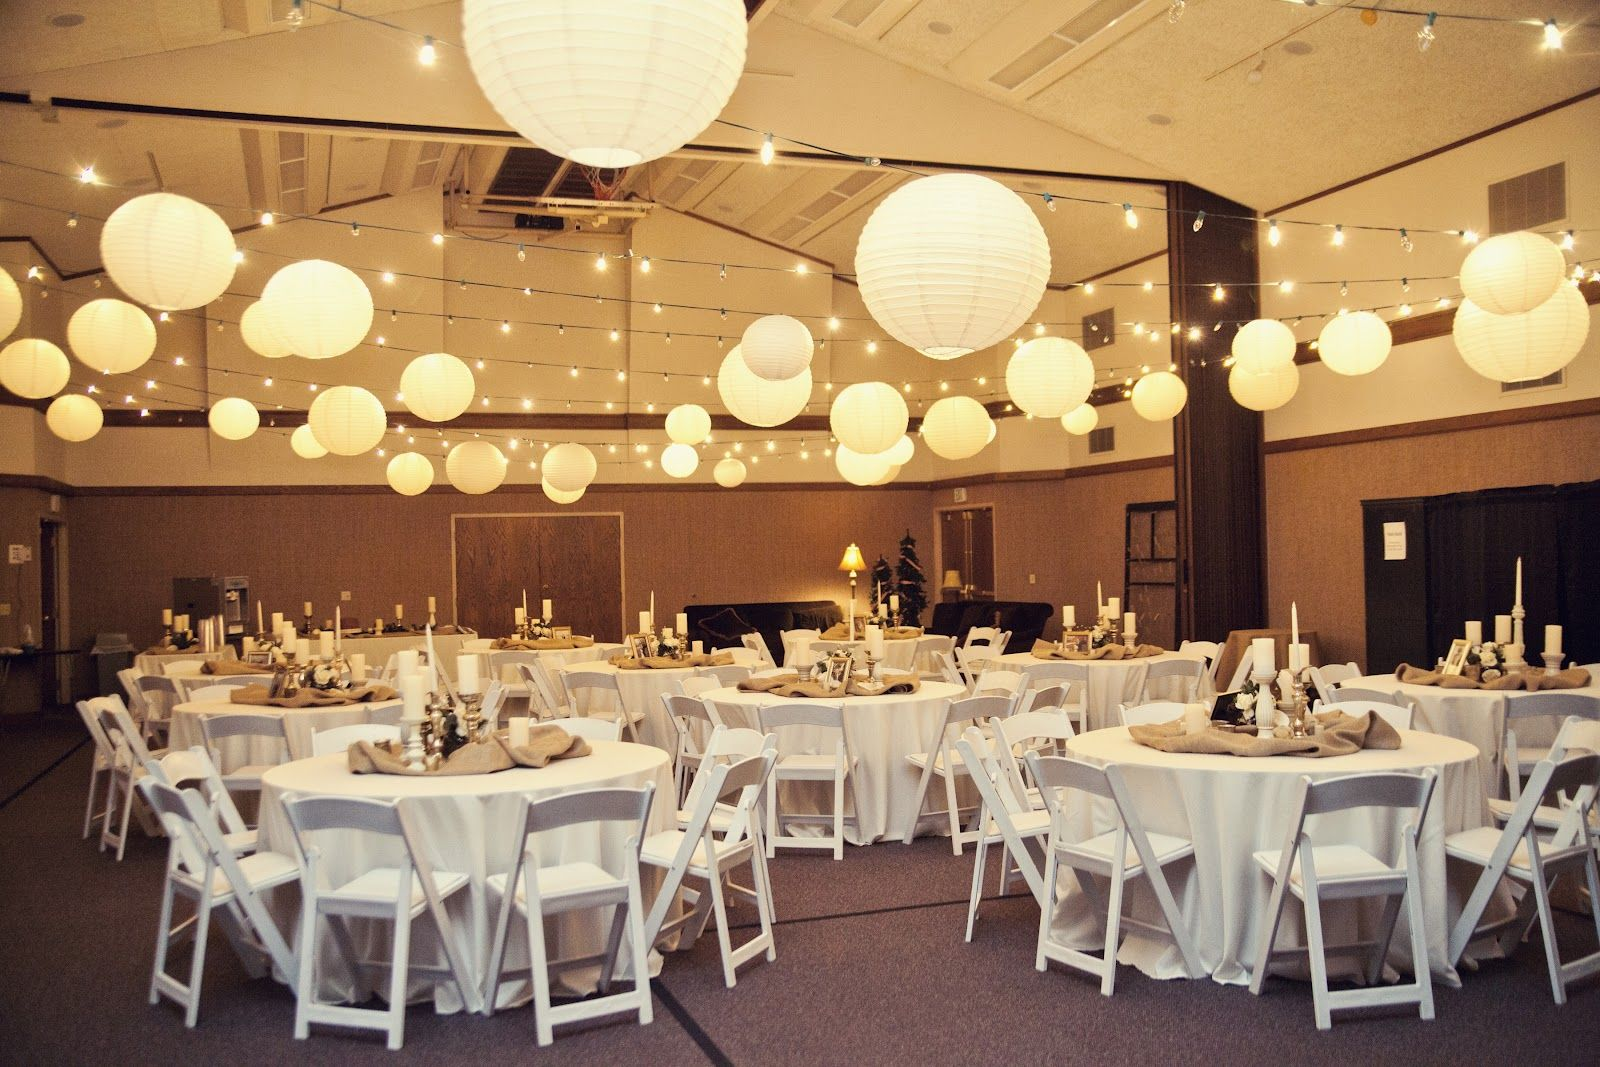 Wedding Home Decoration Decorating With Extremely High Ceilings Help Ceilings